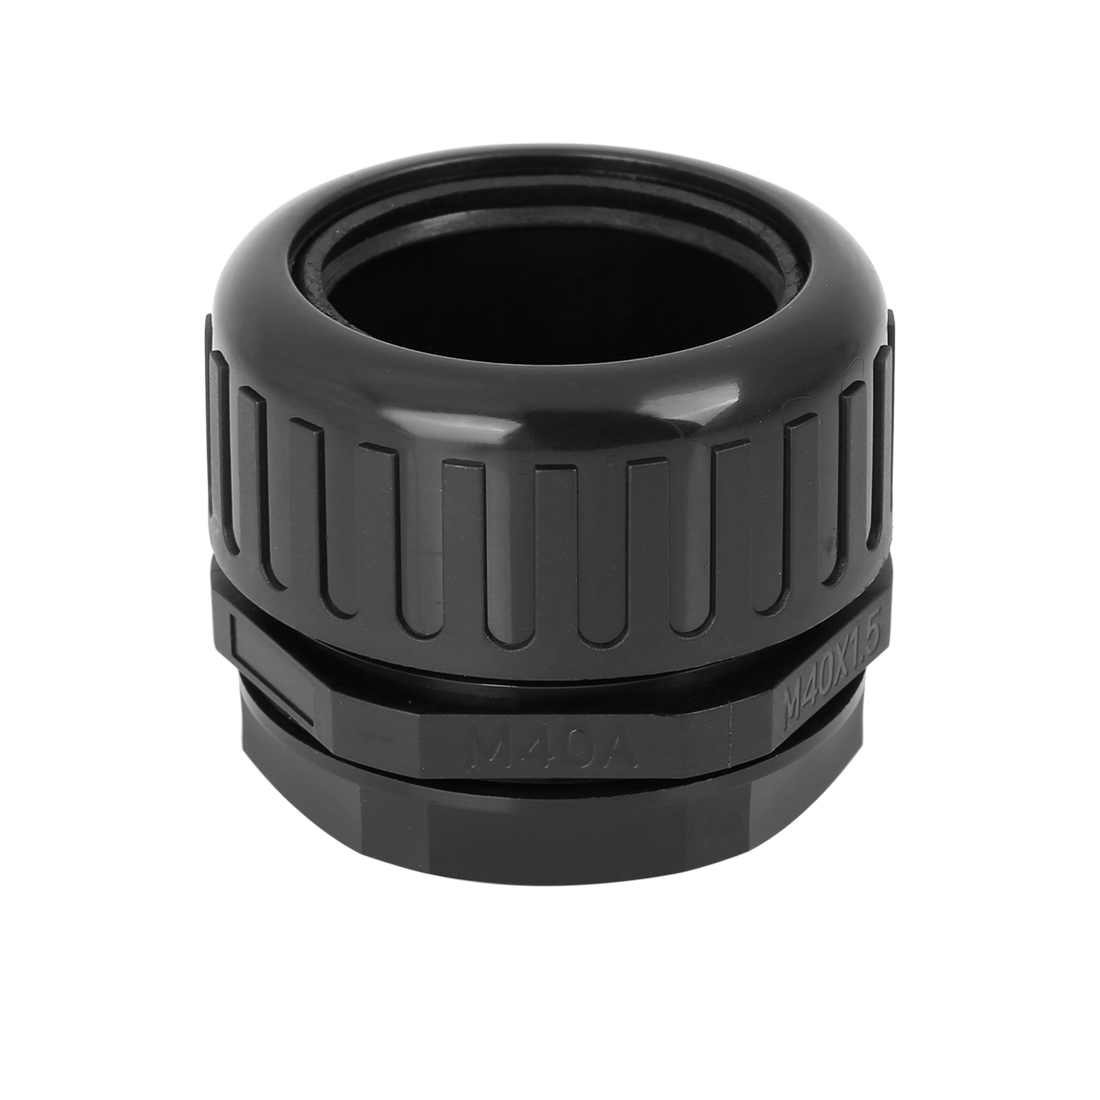 Cable Gland Nylon Plastic Connectors with Lock Nut and Gaskets M40x1.5